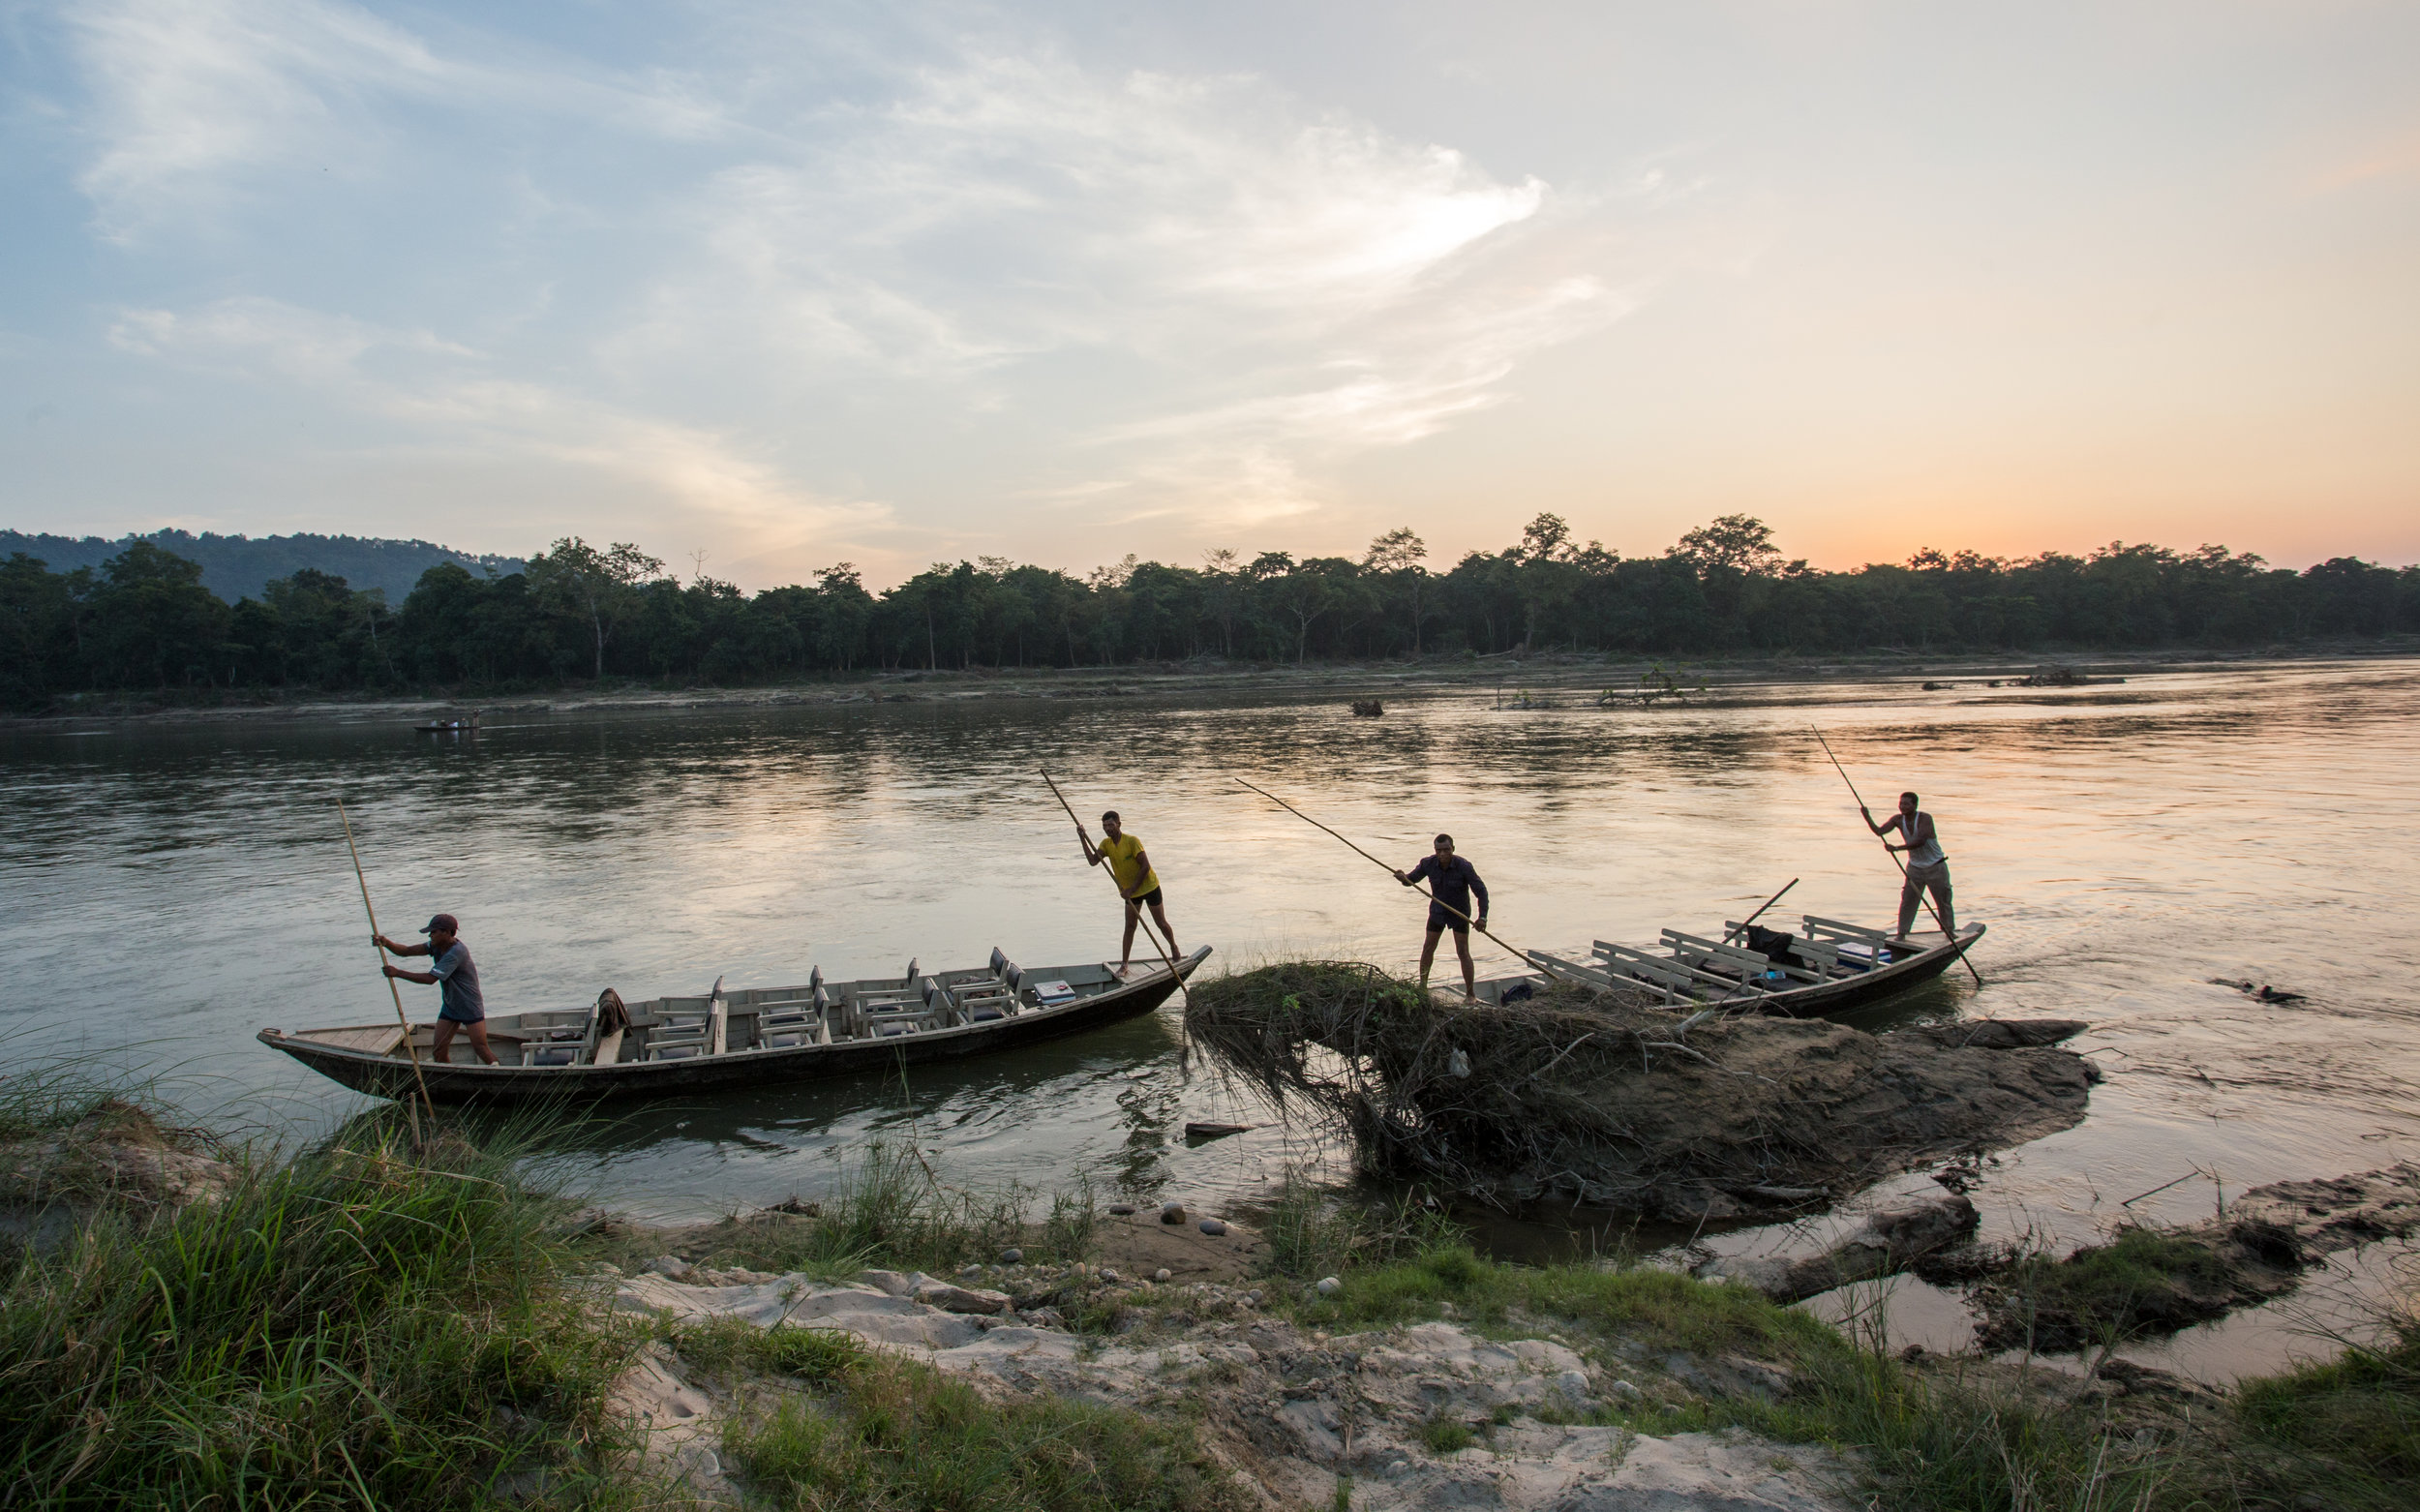 Boat owners going home for the evening, Chitwan National Park